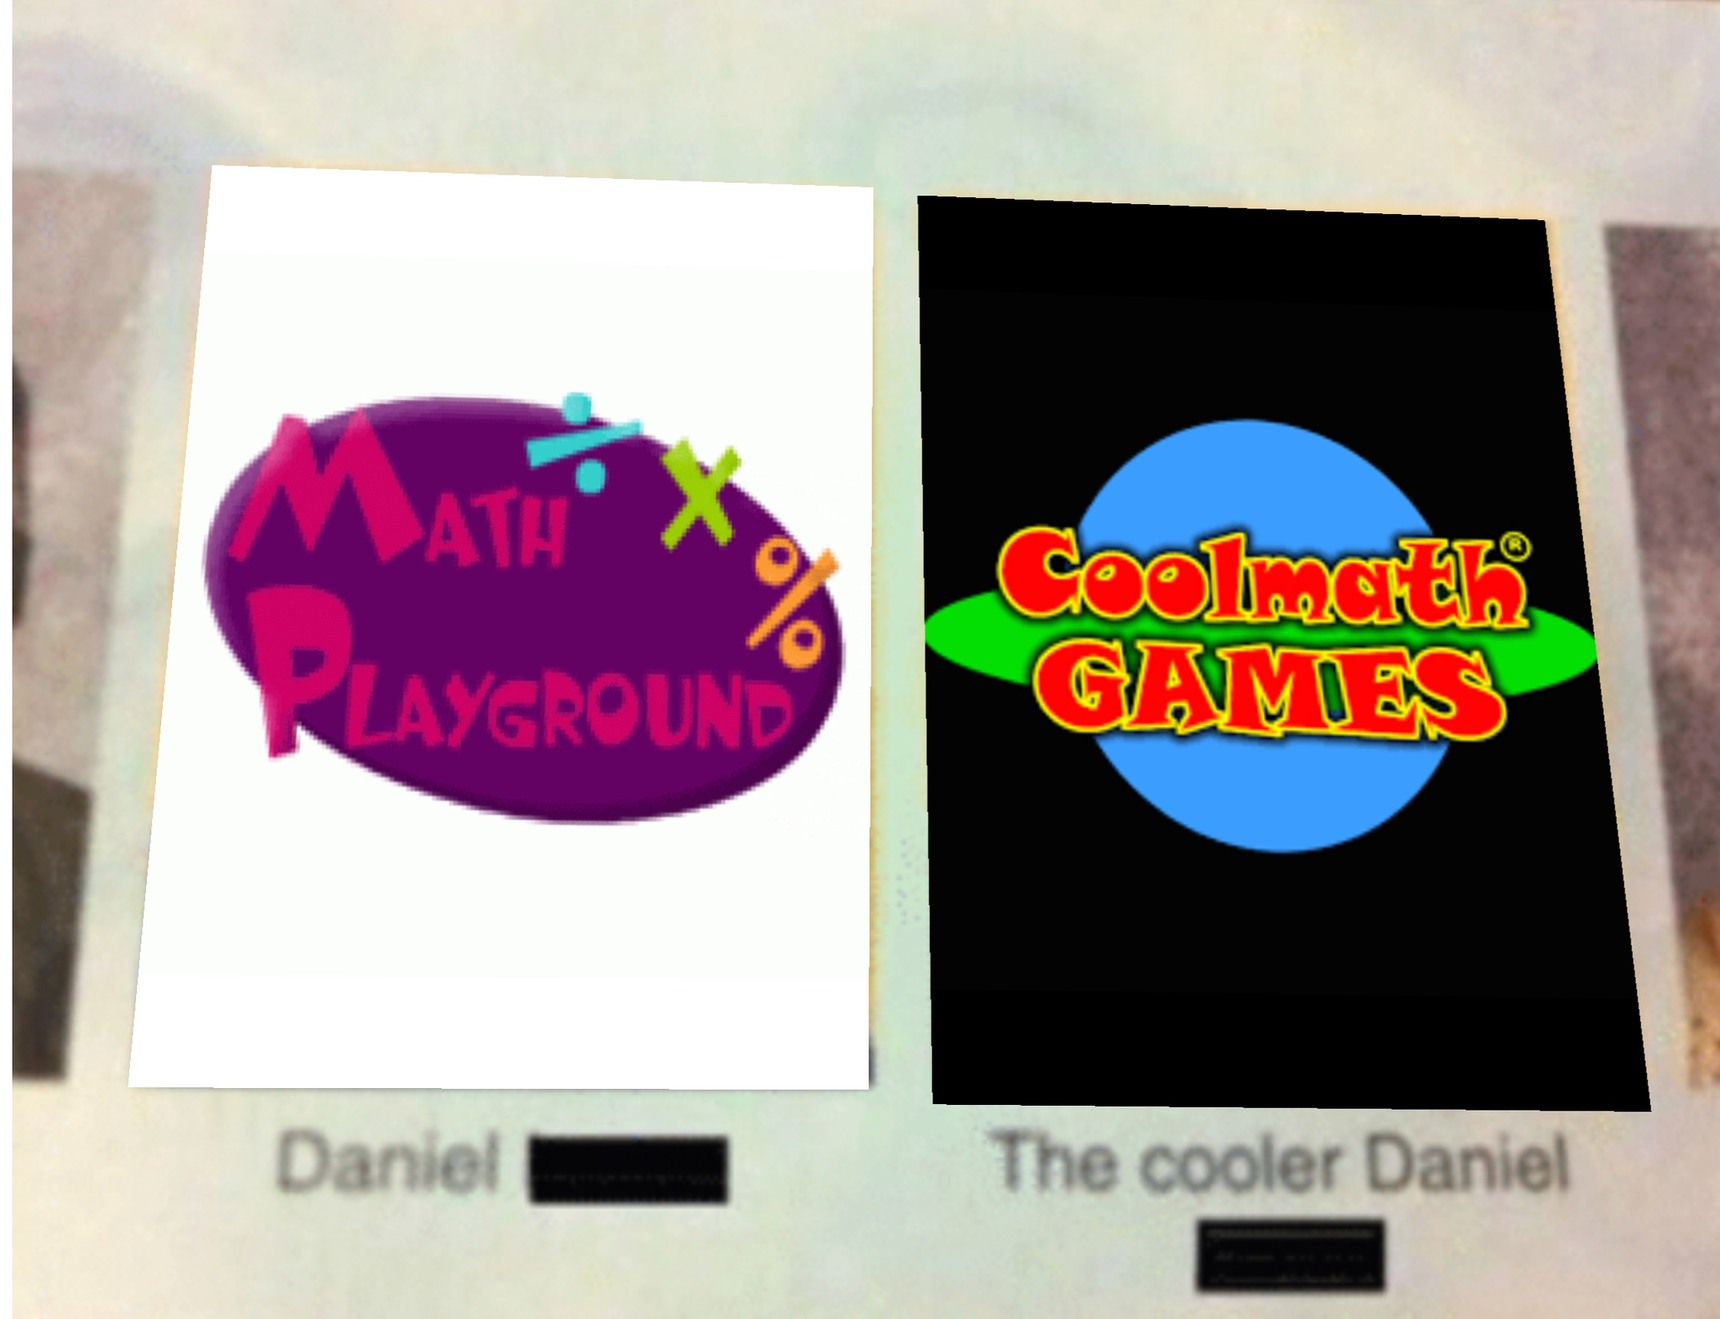 One might even call it the cooler math games - meme